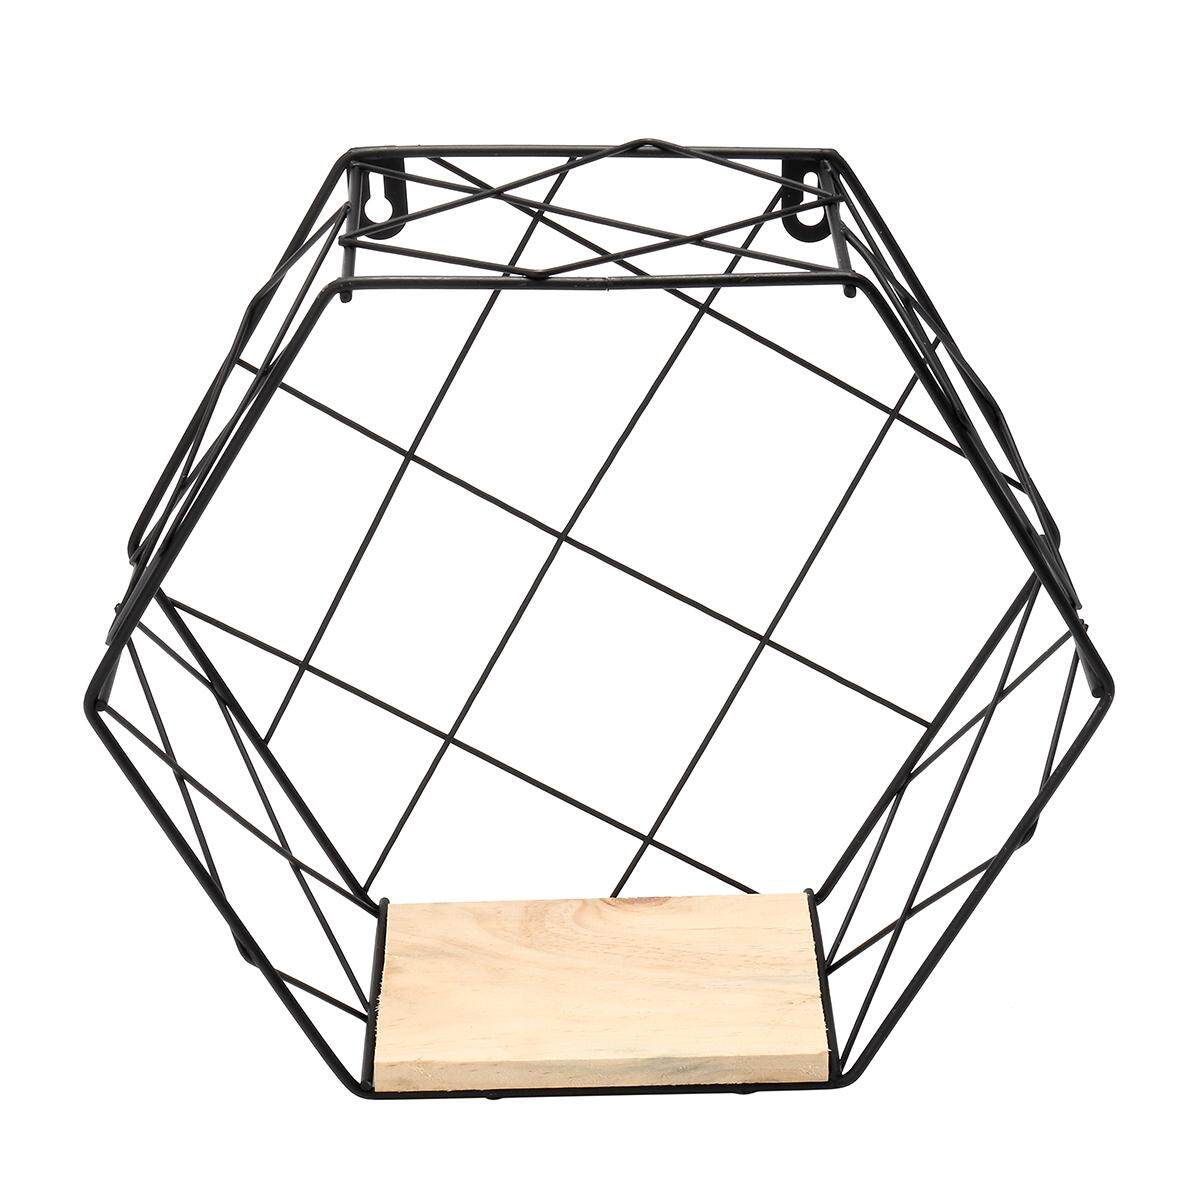 Nordic Wind Hexagon Geometry Shelf By Moonbeam.